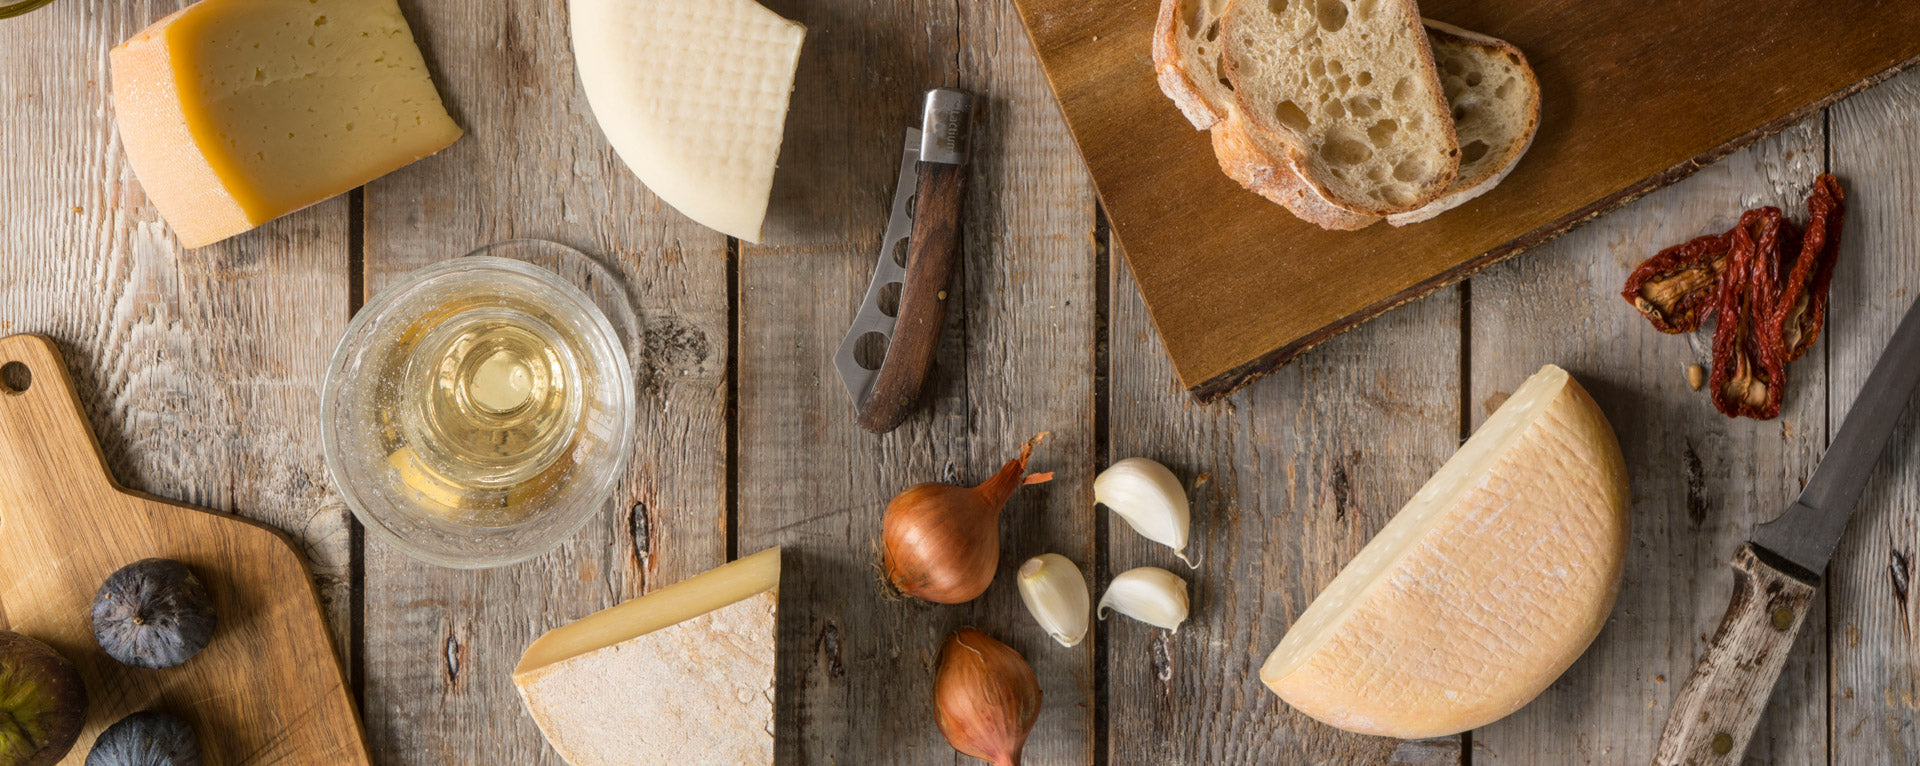 Montadito cheese boards